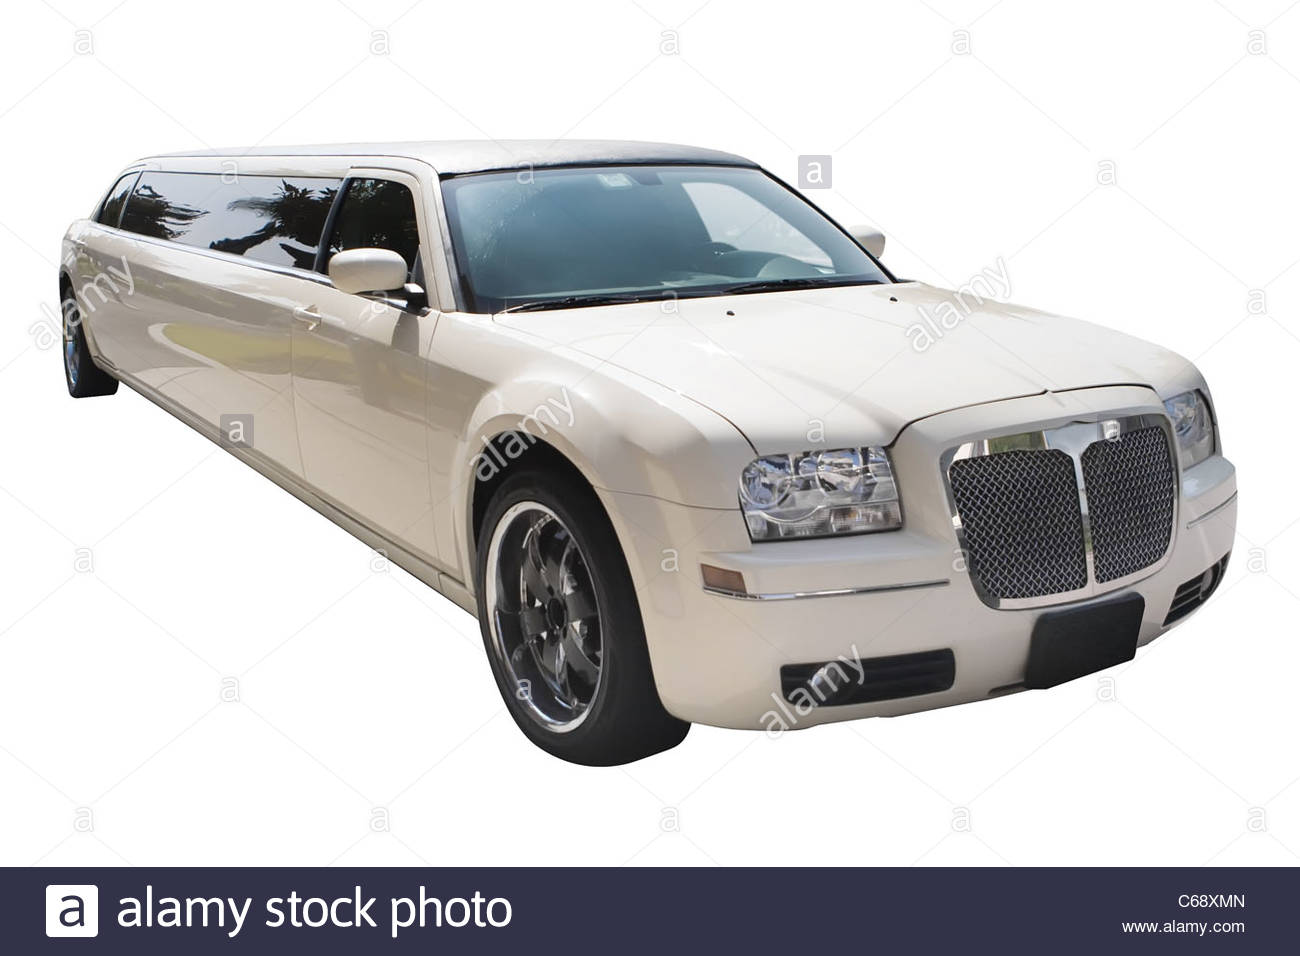 A white limousine without any background Stock Photo 38305253   Alamy 1300x956